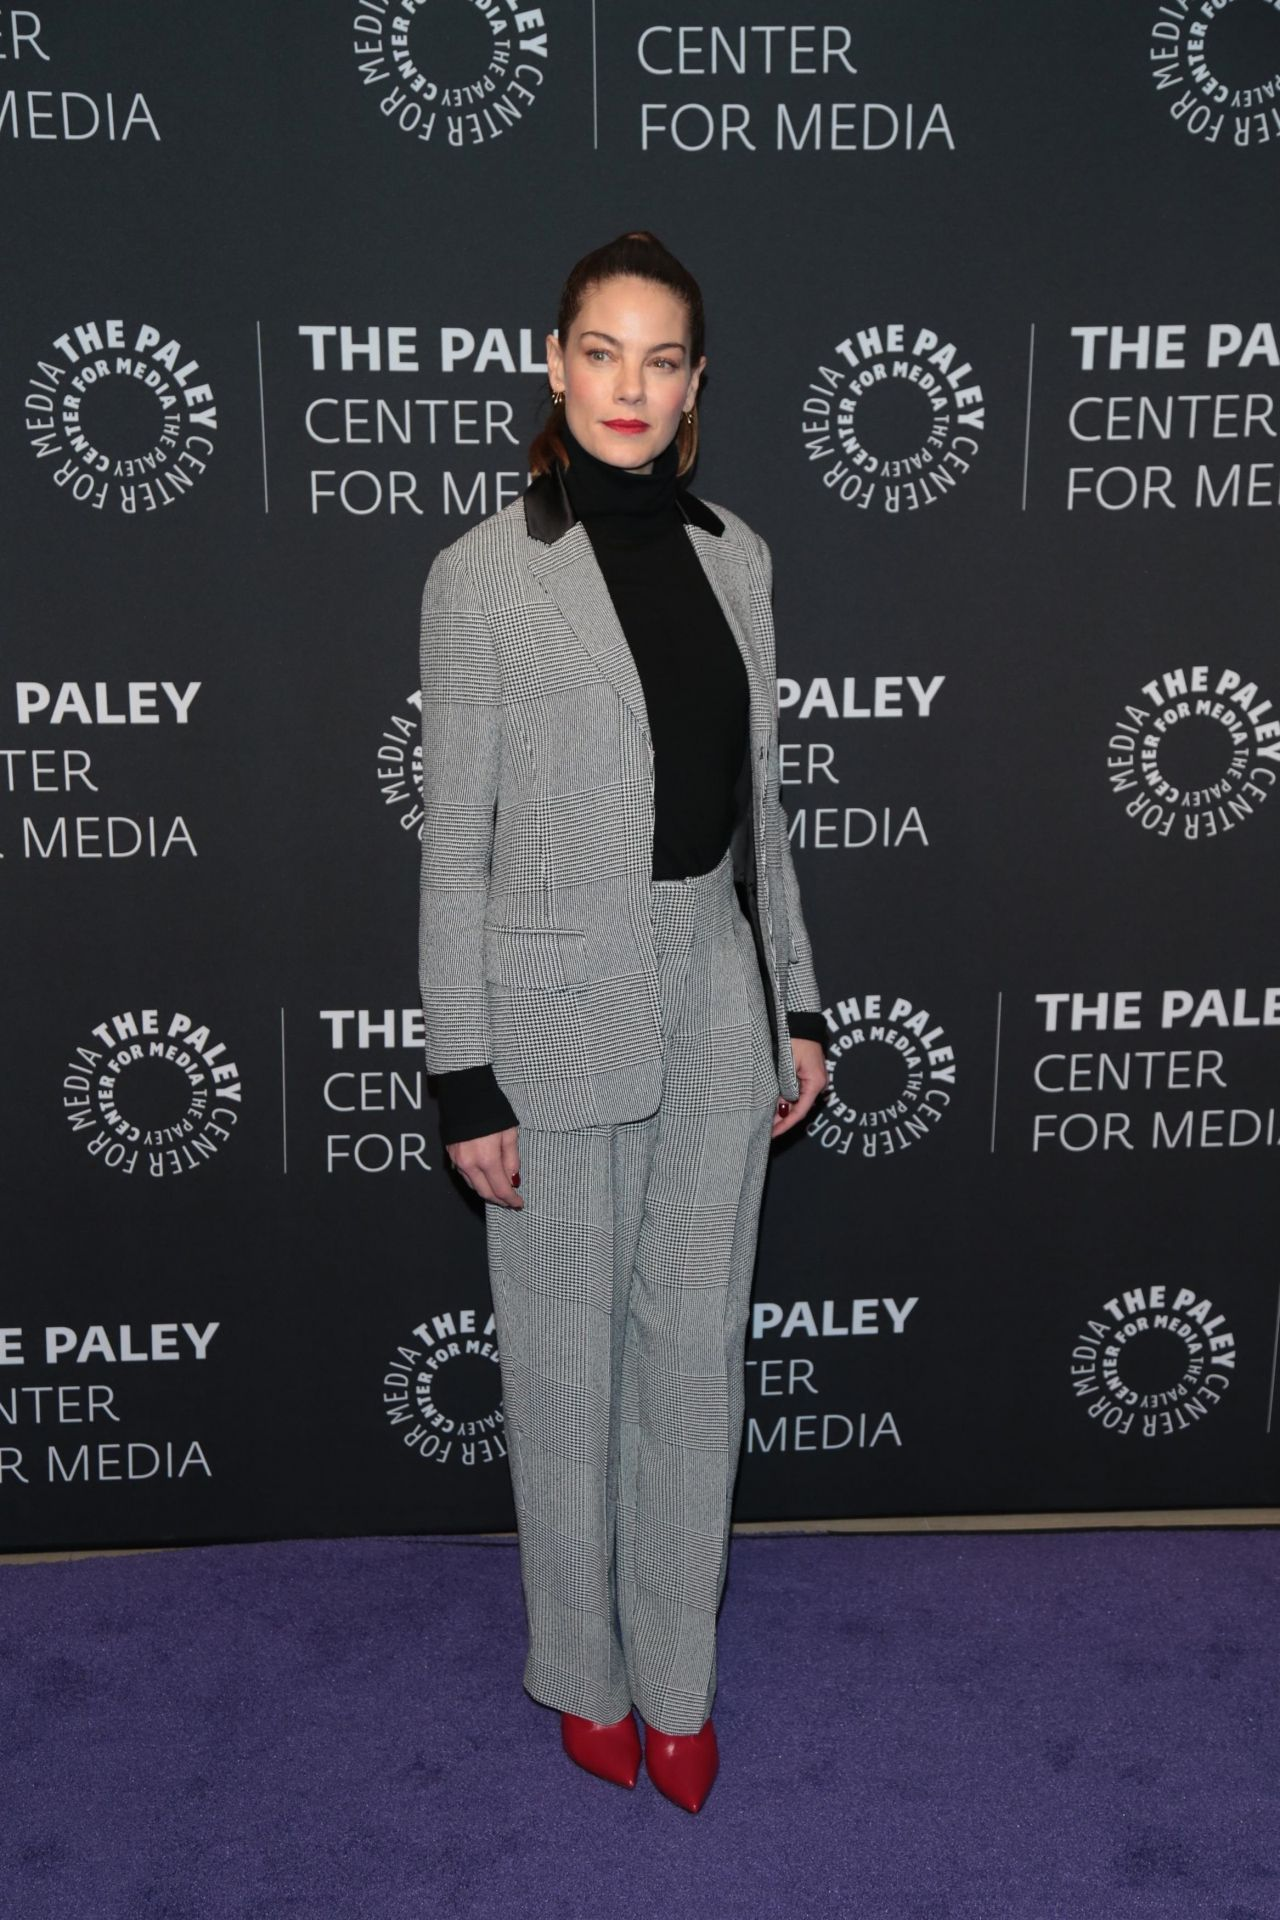 http://celebmafia.com/wp-content/uploads/2017/12/michelle-monaghan-at-the-path-season-3-premiere-in-beverly-hills-7.jpg